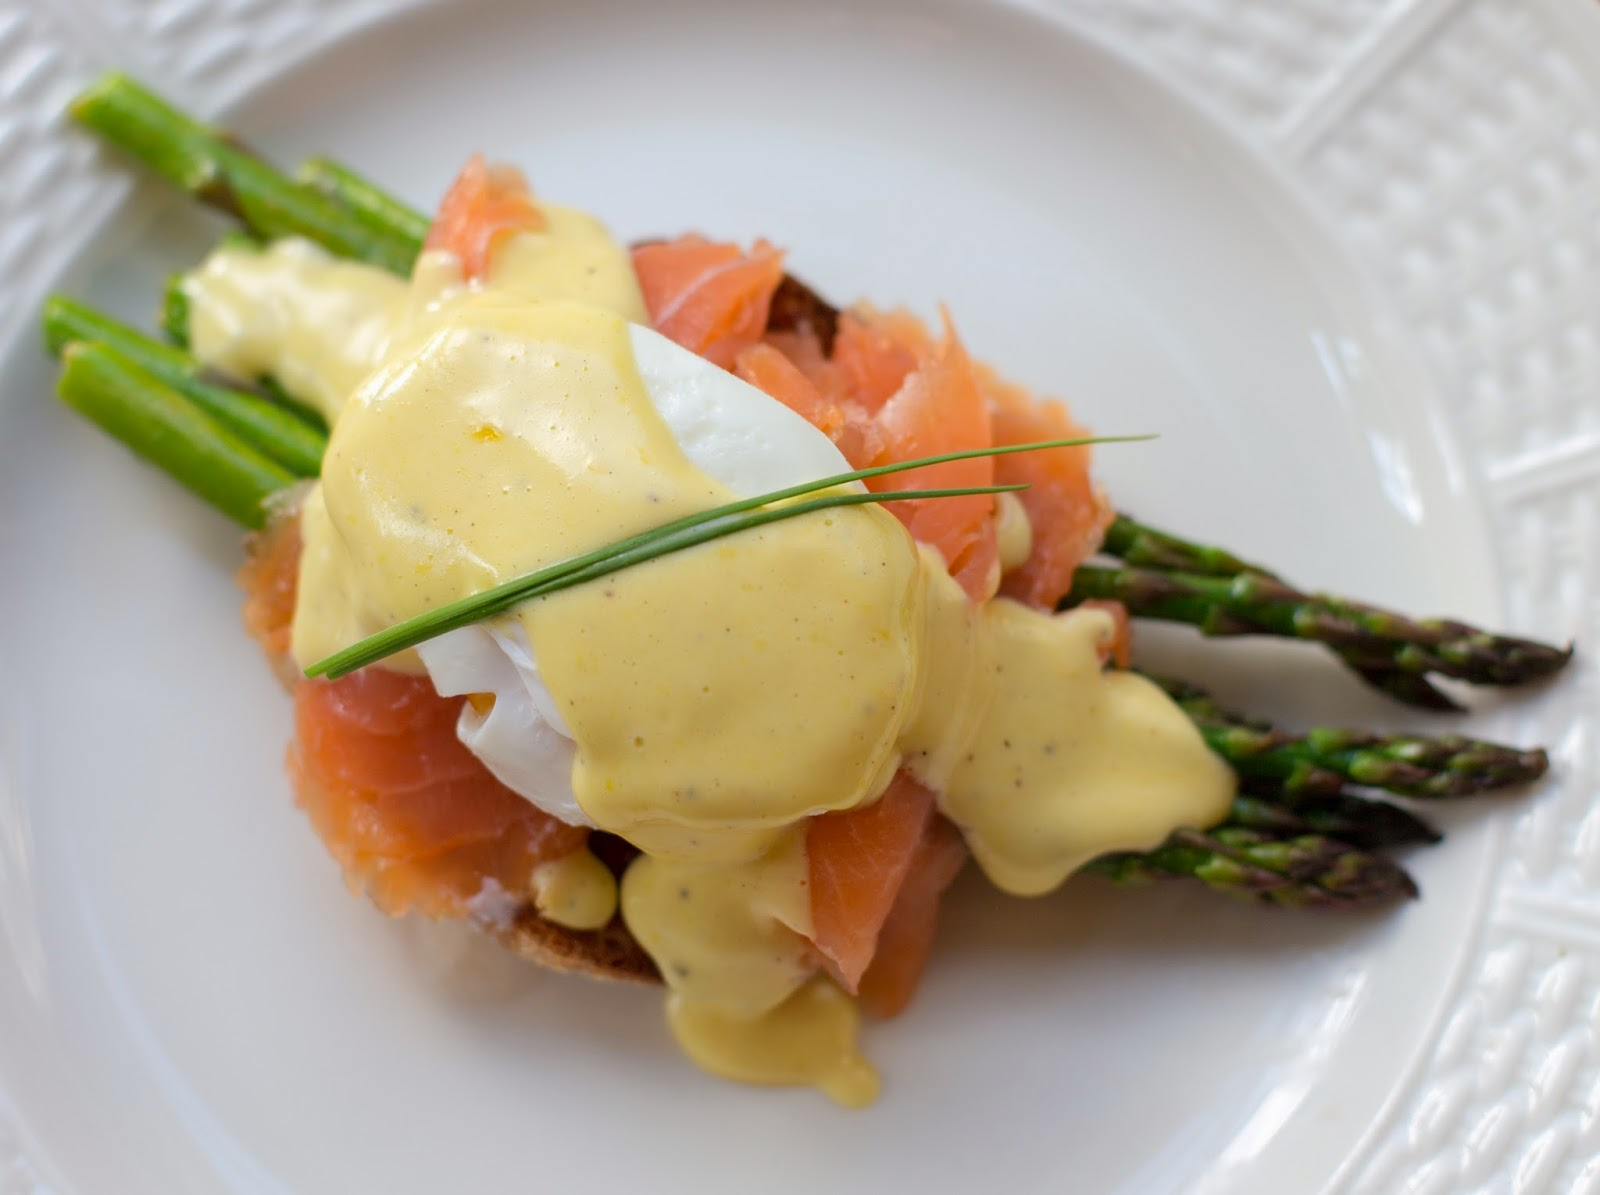 Straight to the Hips, Baby: Smoked Salmon & Asparagus Eggs Benedict